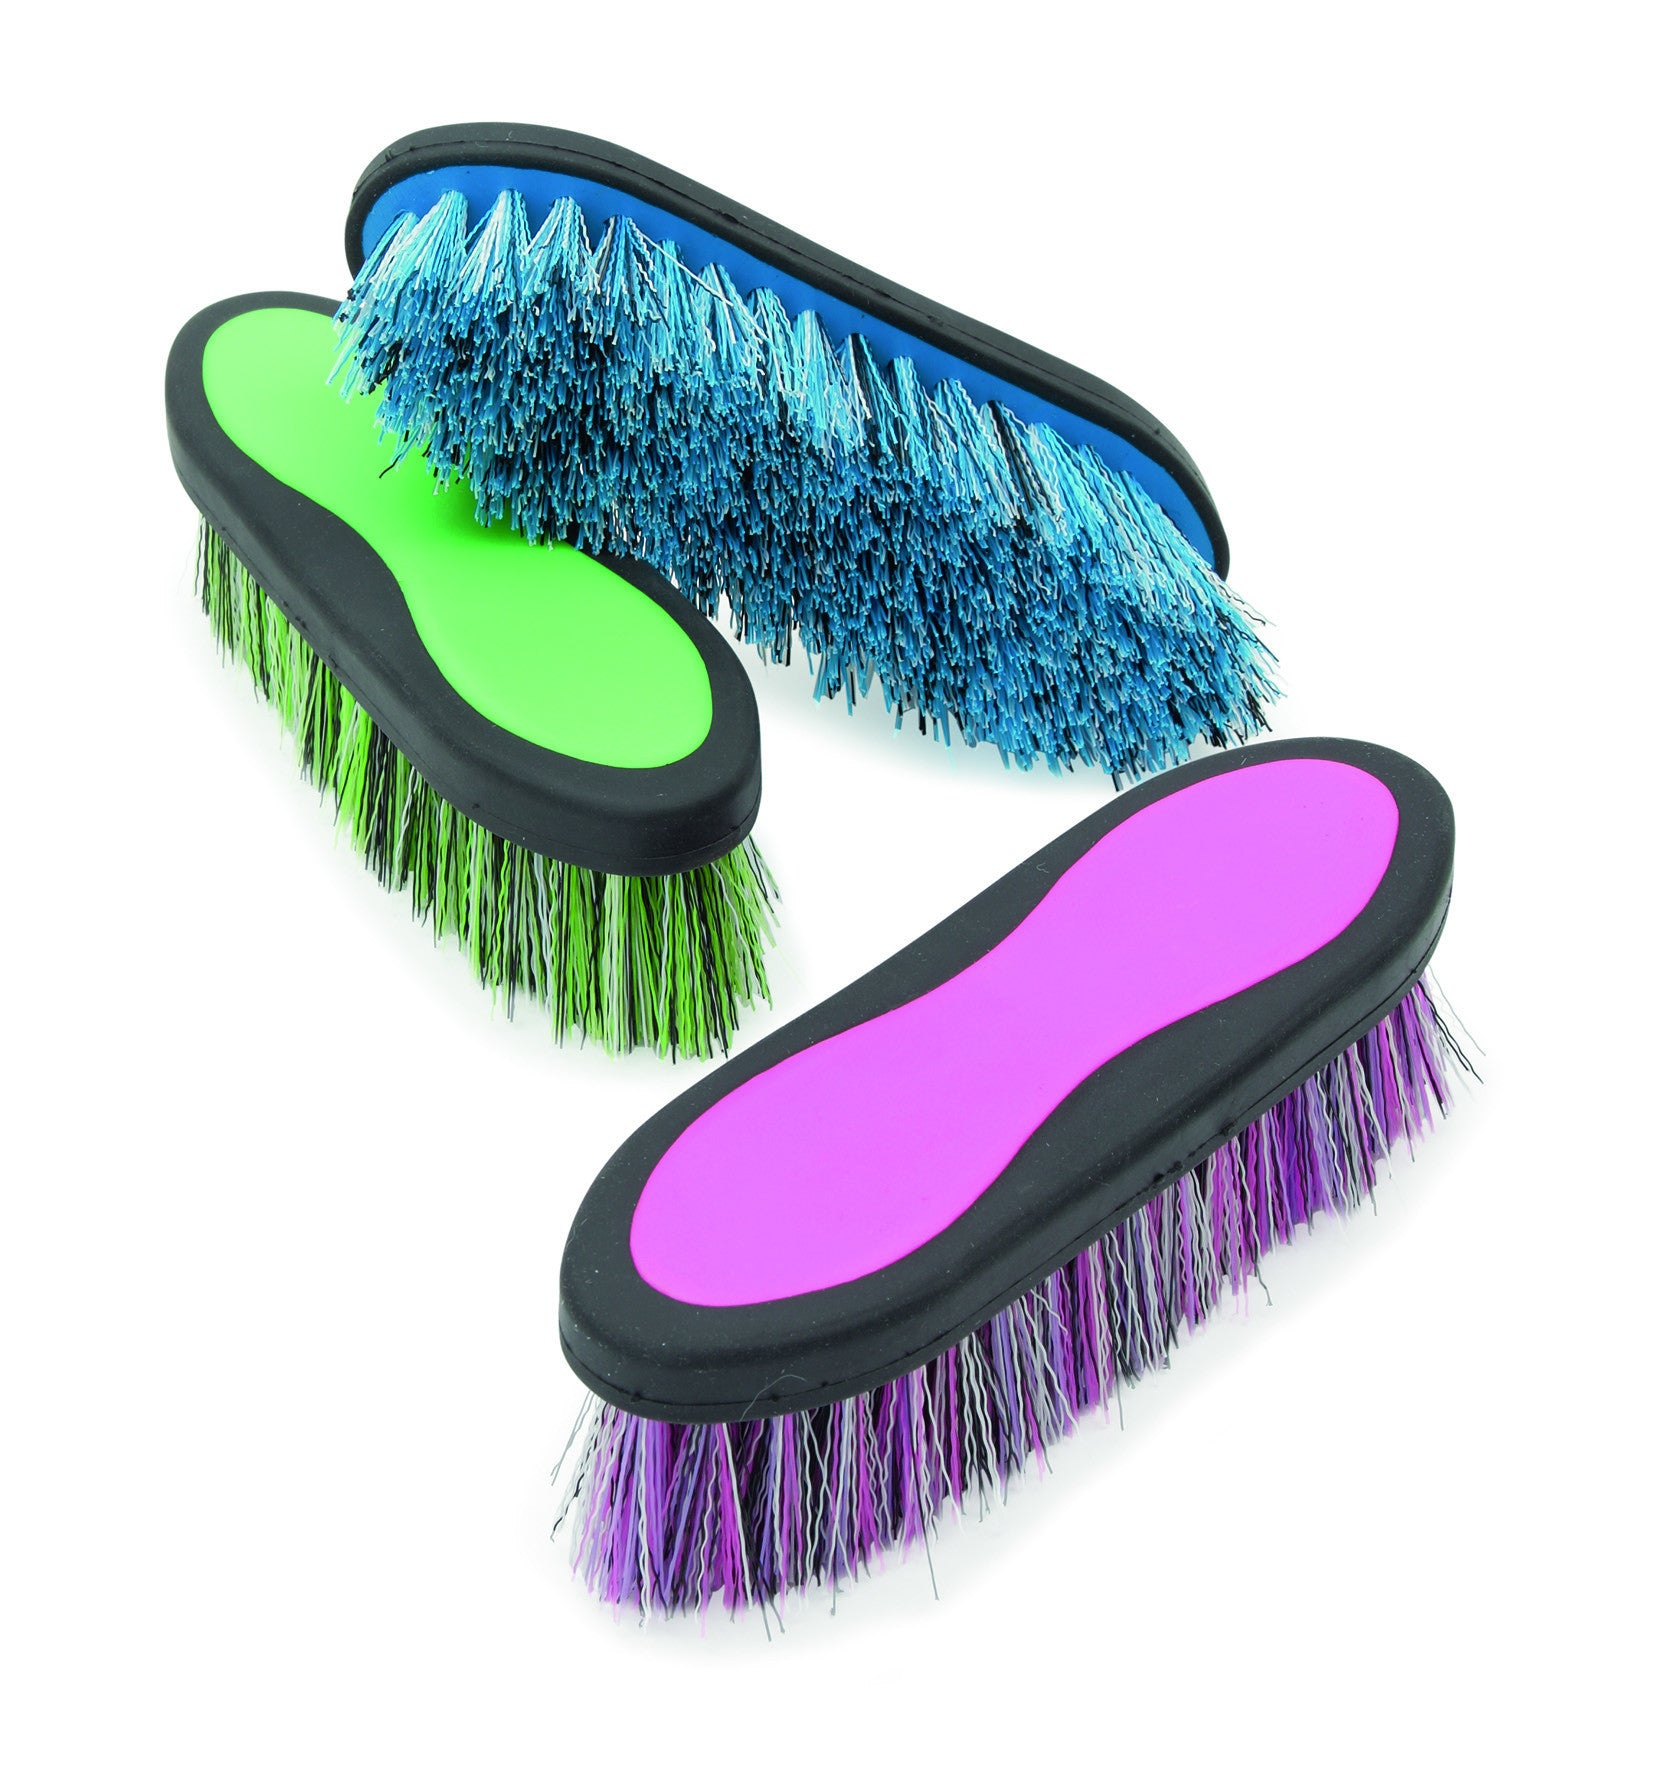 Ezi-Groom Dandy Brush